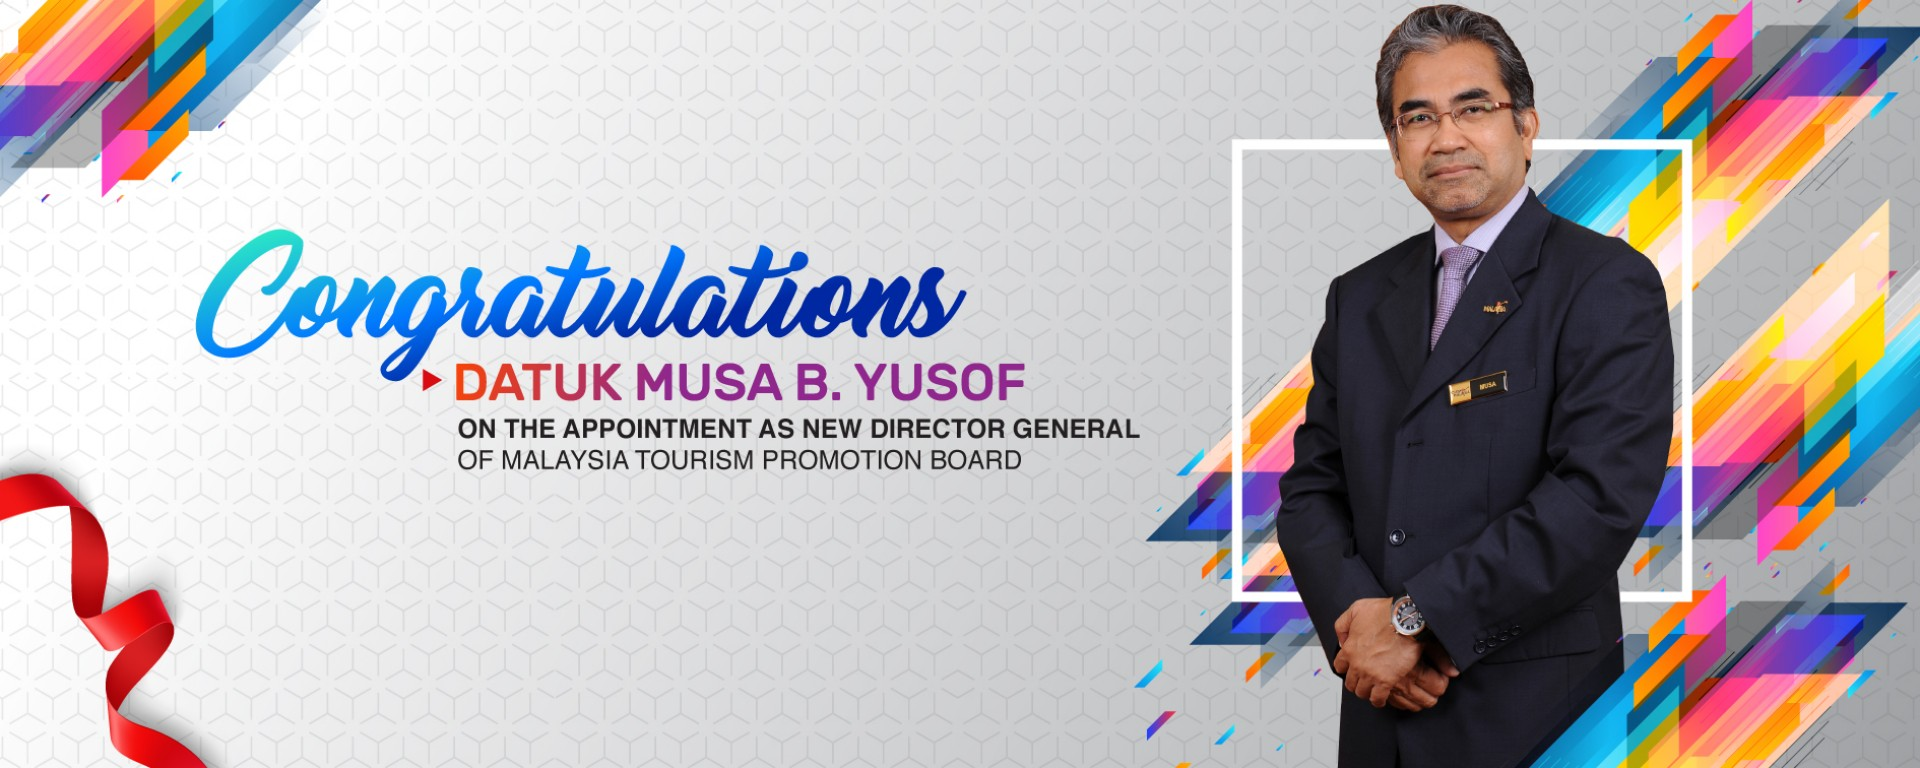 <div class='action'><a href='https://www.tourism.gov.my/media/view/datuk-musa-yusof-appointed-as-new-tourism-malaysia-director-general' class='btn btn-danger btn-lg' target='_blank'>Read More</a></div>